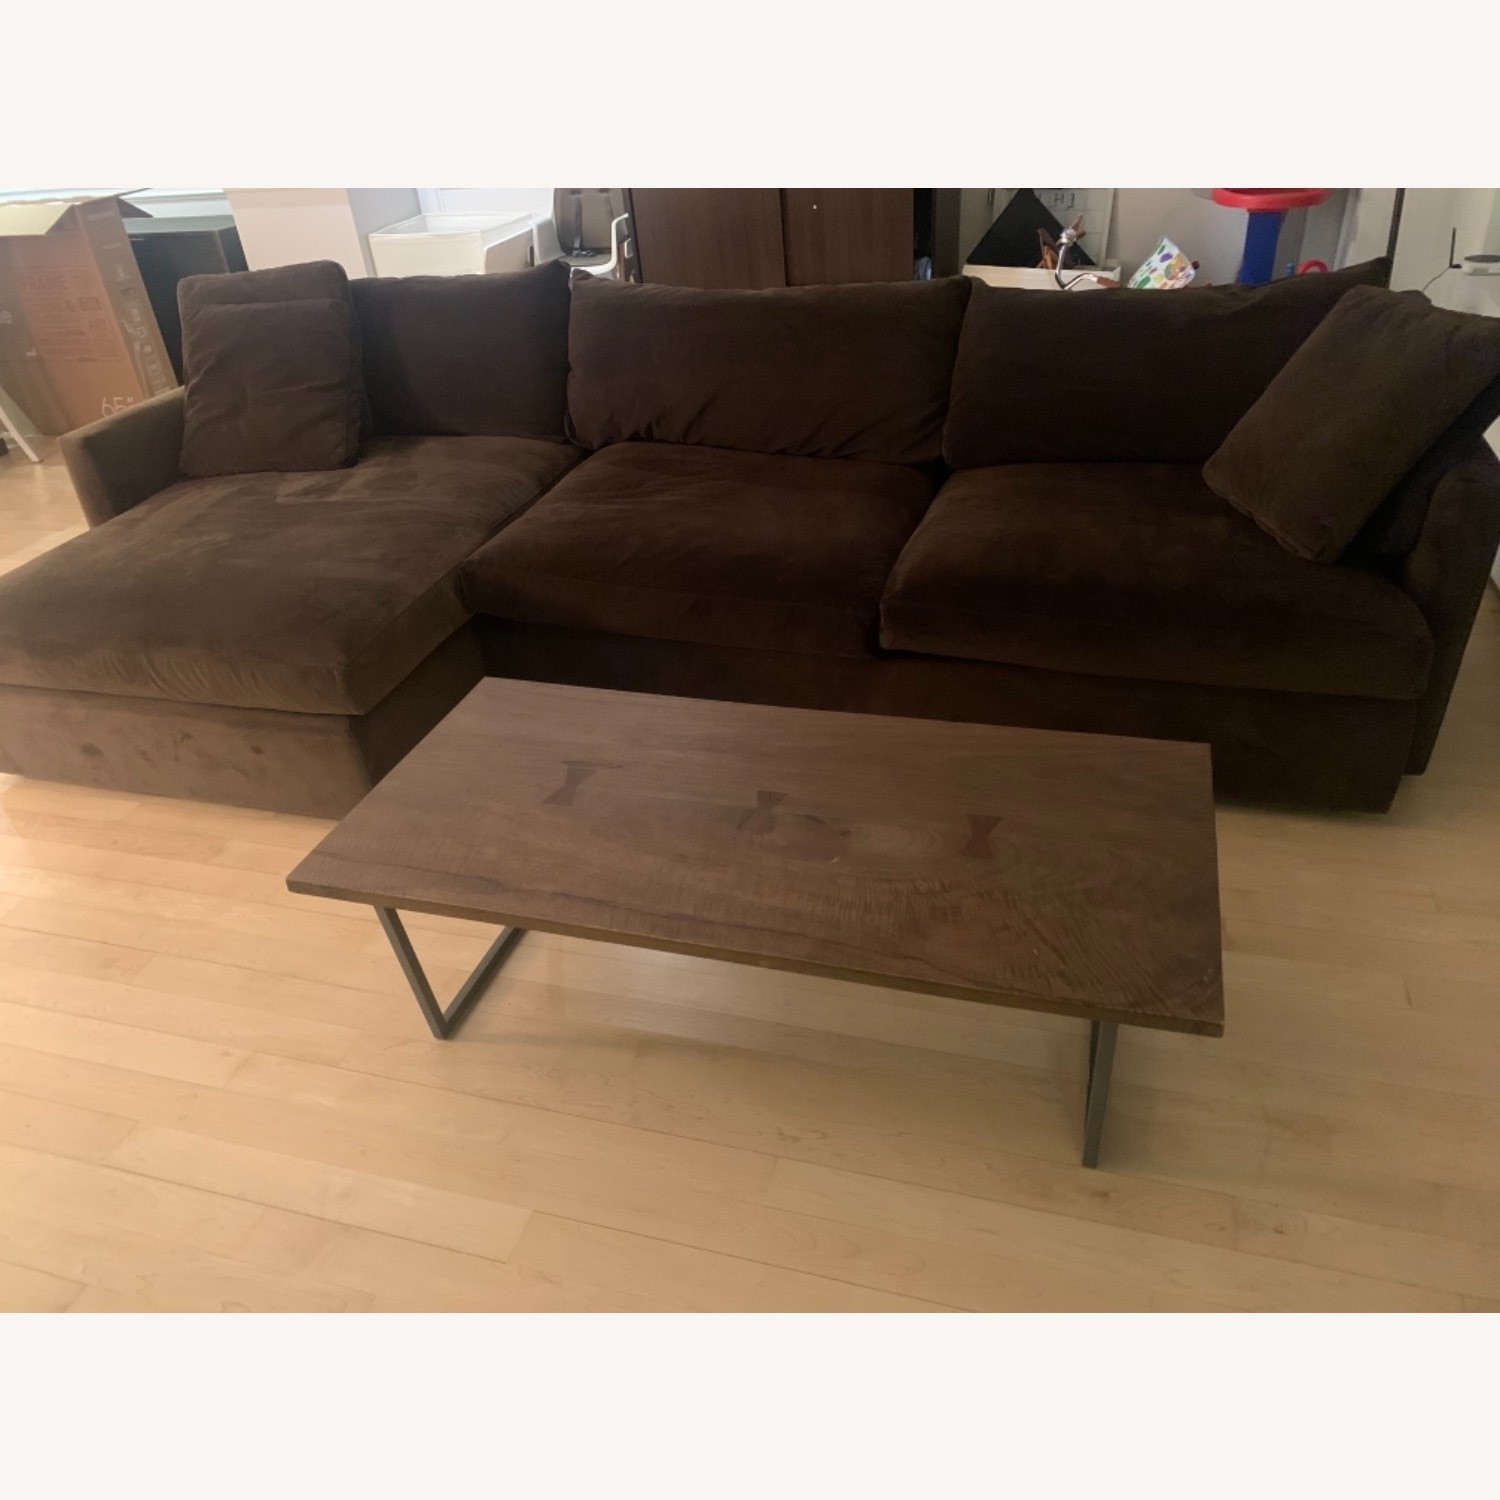 Crate & Barrel Lounge Chaise Brown Color - image-1